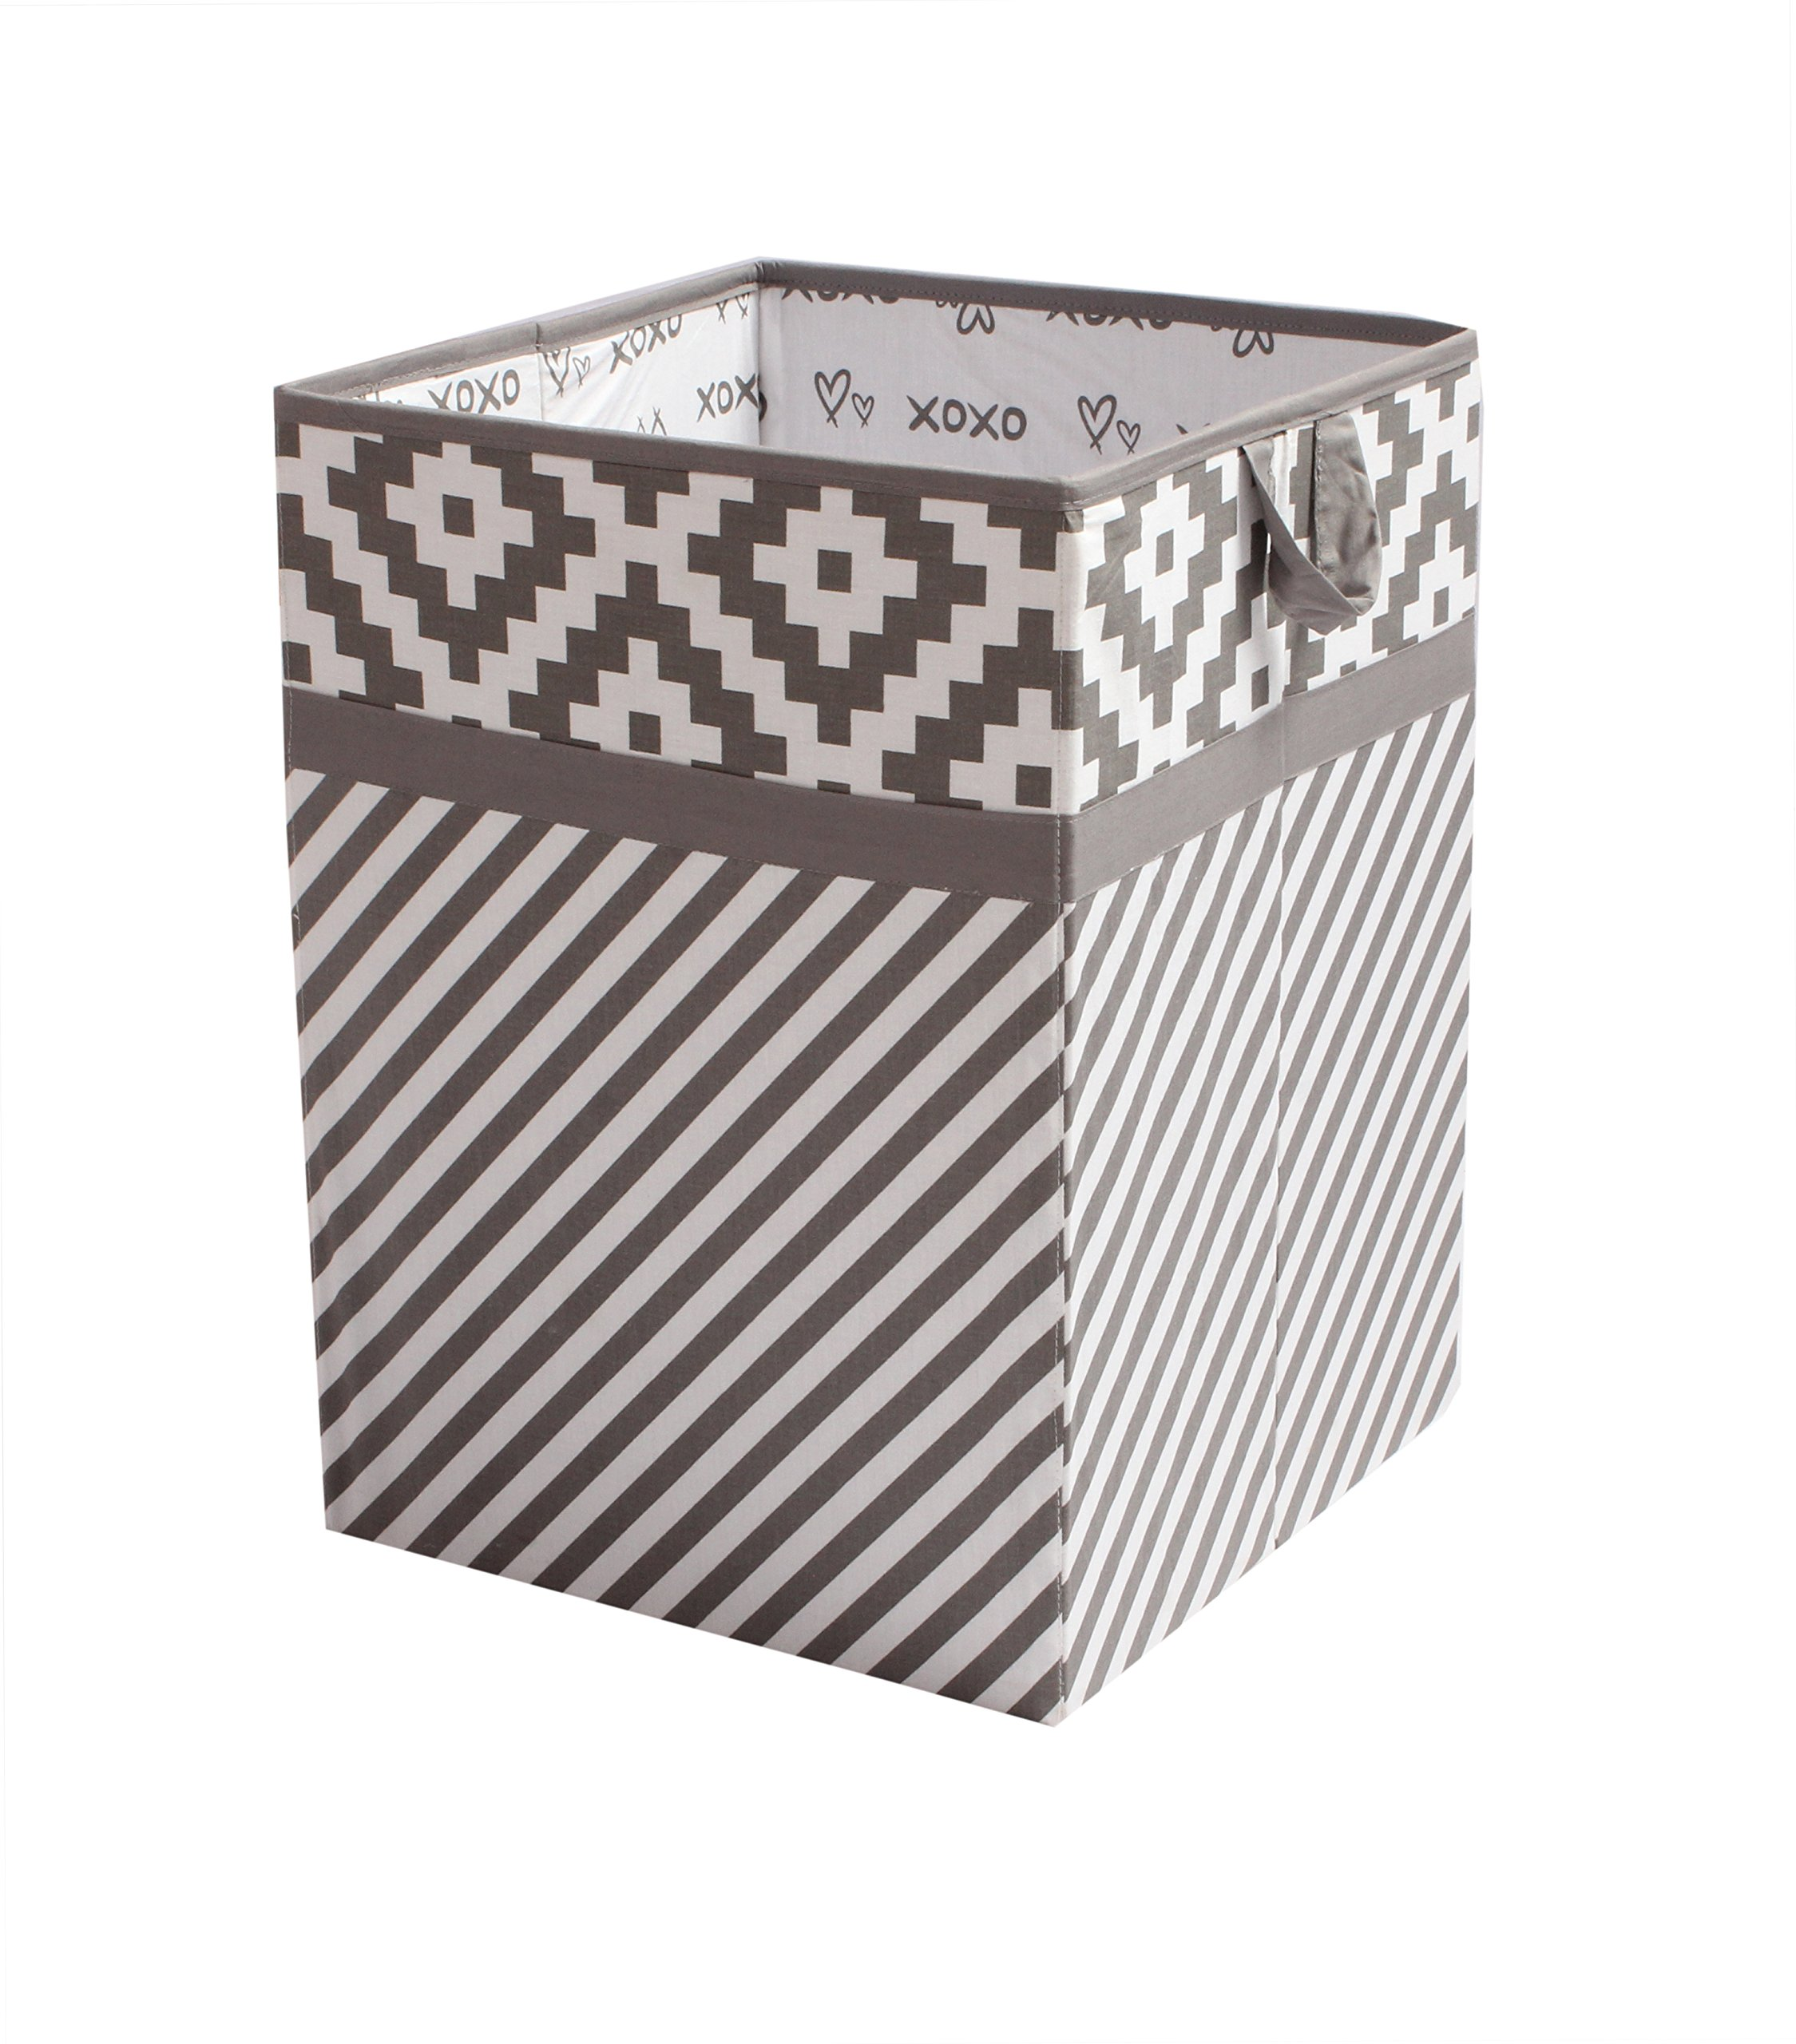 Bacati Love Fabric Collapsible Hamper, Grey/White, 14'' x 14'' x 19'' by Bacati